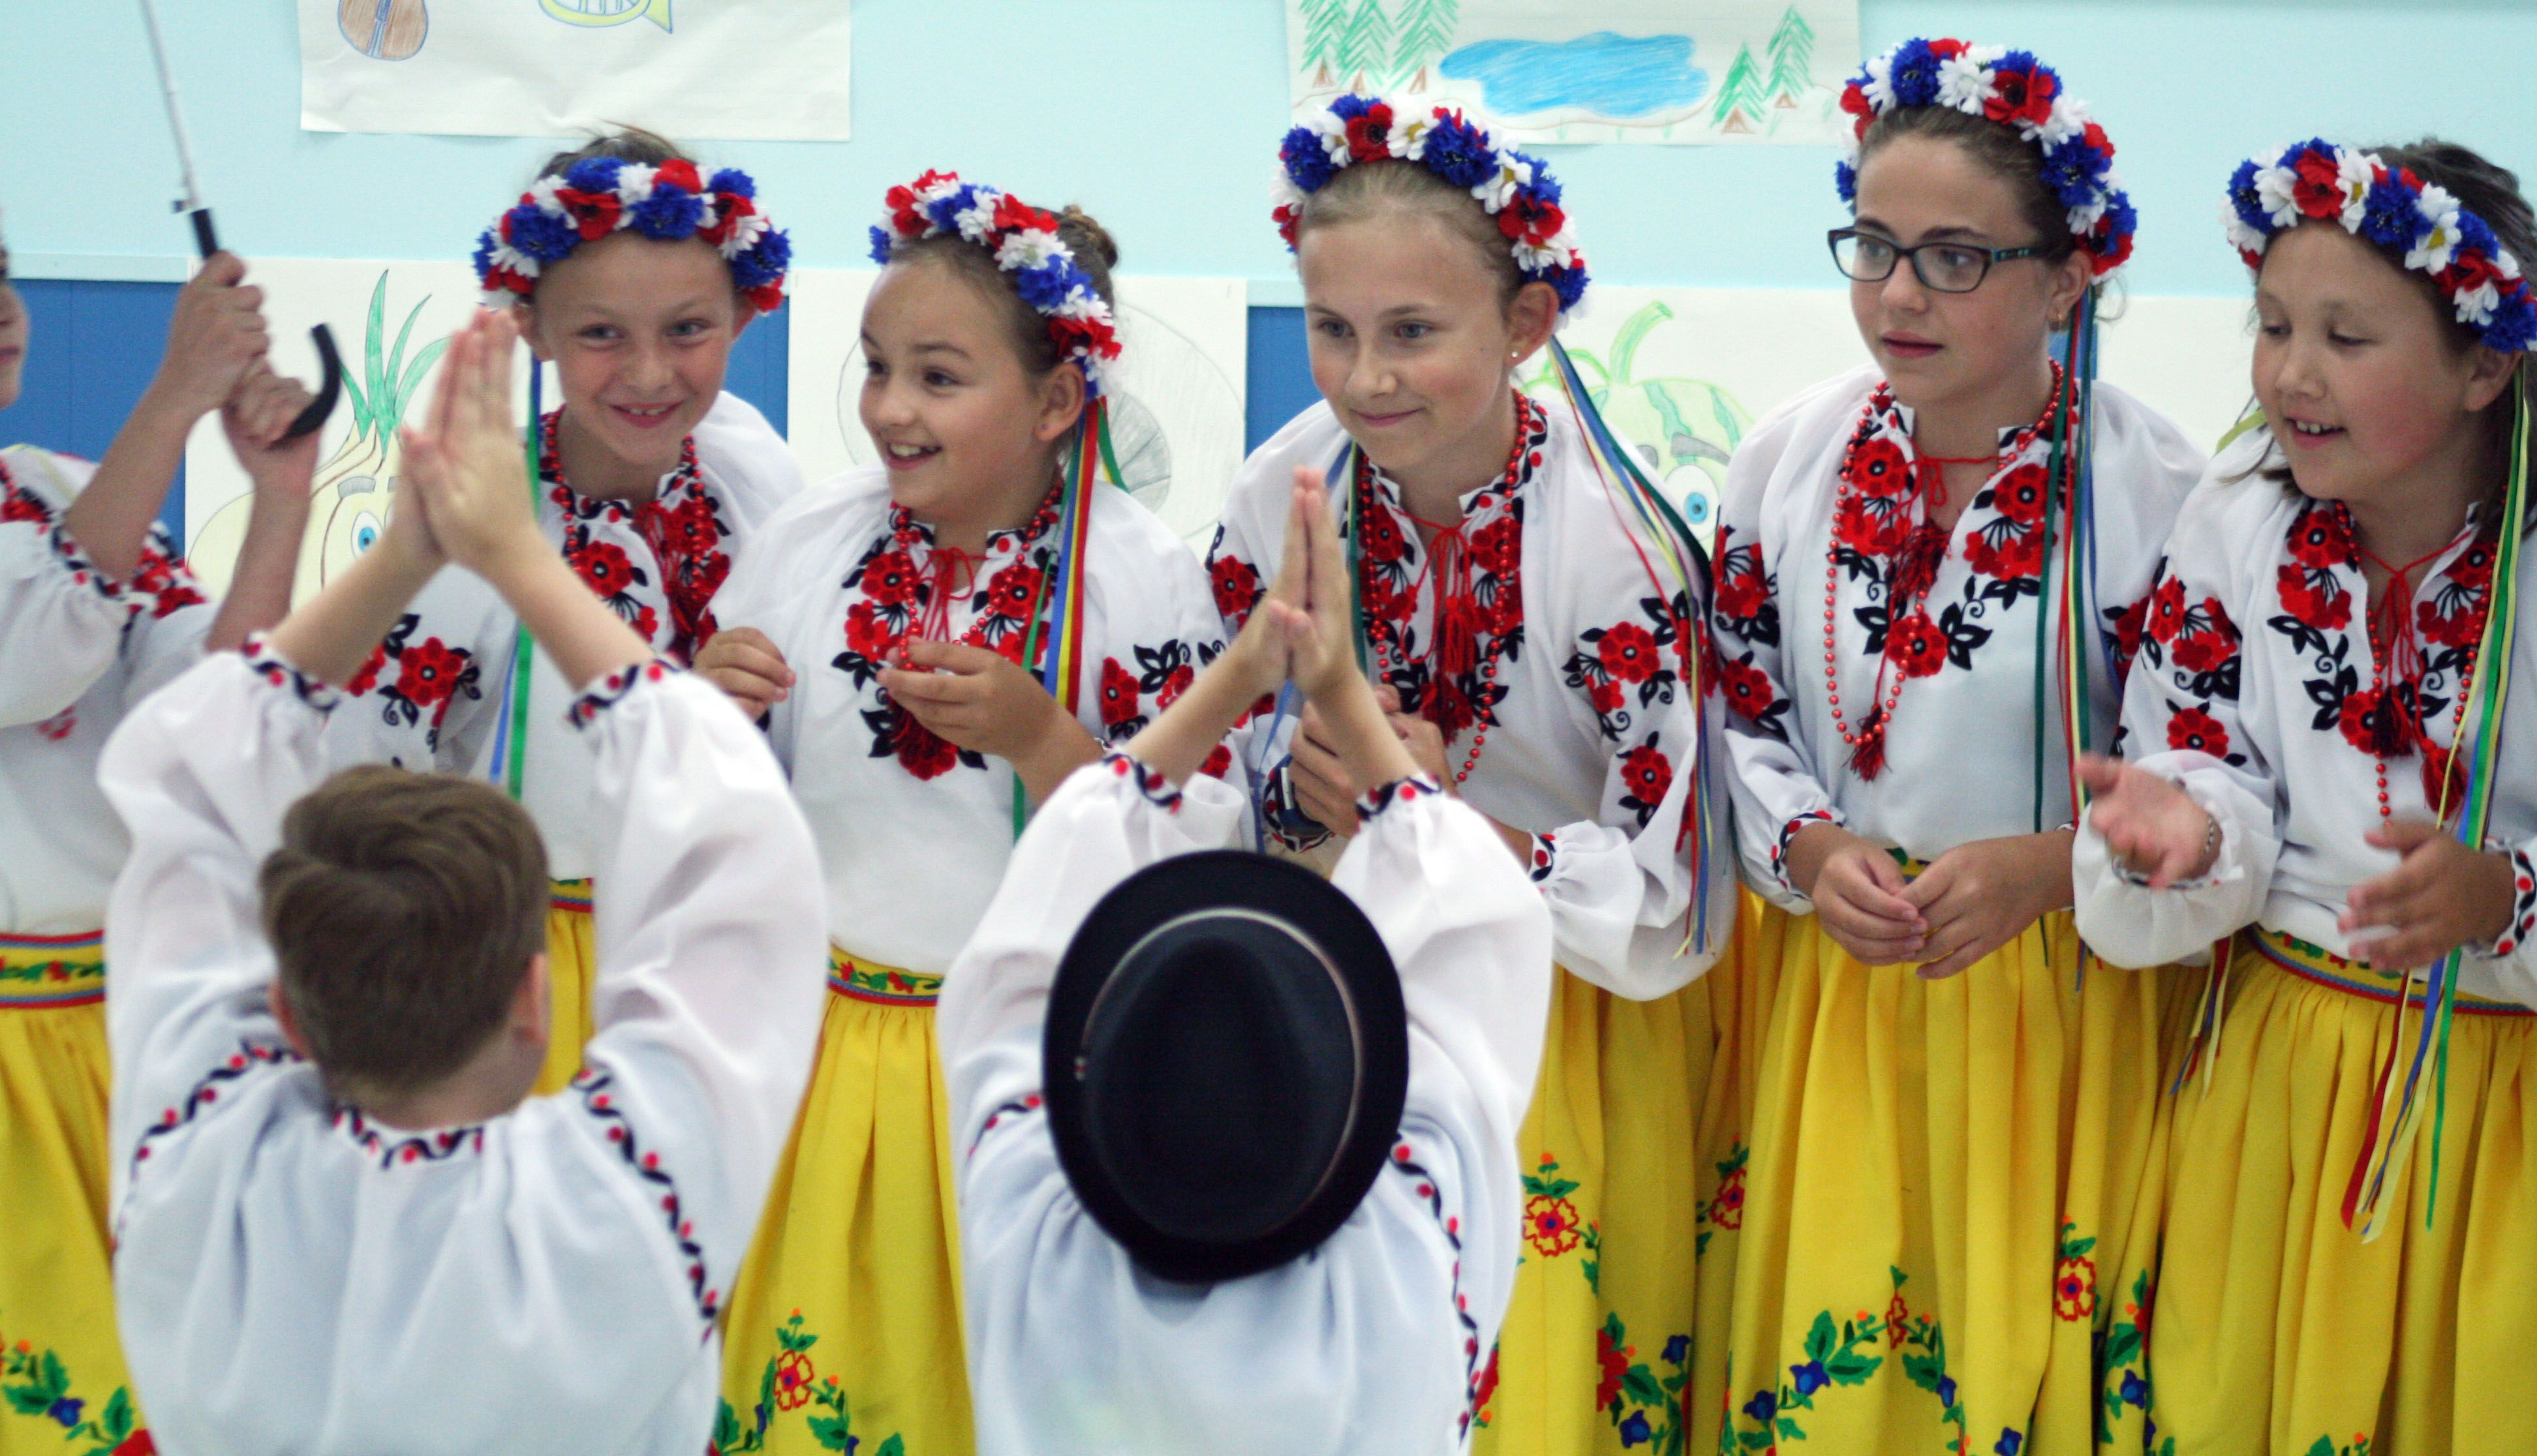 """The girls have the last laugh in the dance """"Doschyk"""" at the Kenora Ukrainian Summer Camp dance recital at the Ukrainian Literacy Hall in Kenora on Friday, July 20. Ryan Stelter/Daily Miner and News."""